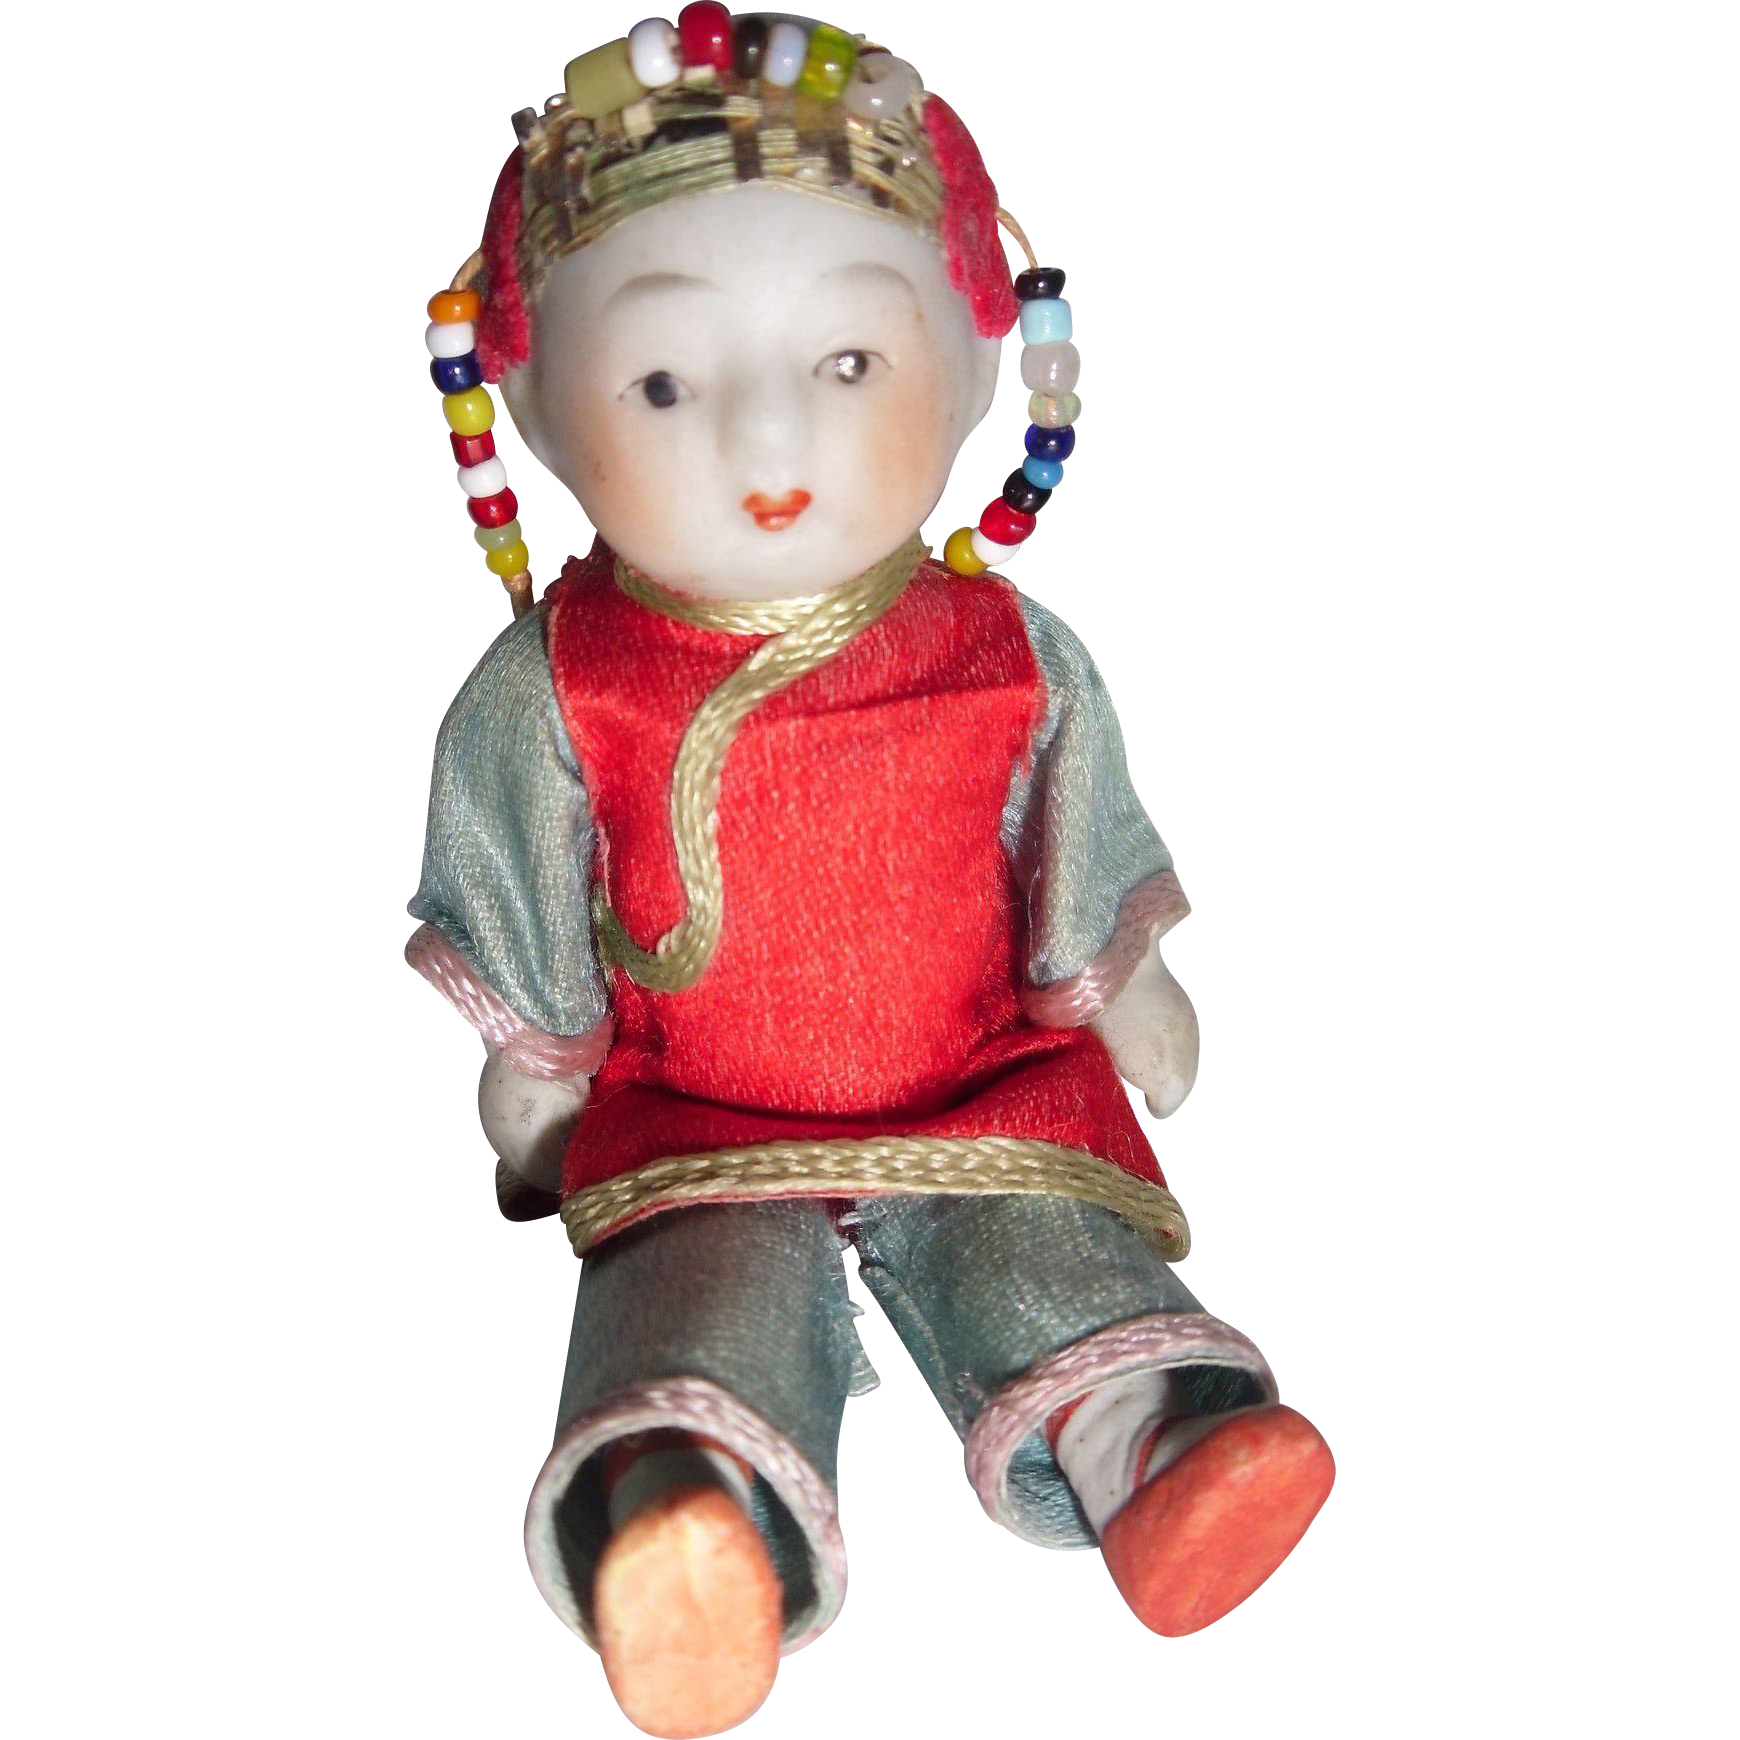 Small Chinese Boy Costume Doll Boy Costumes Doll Clothes Vintage Dolls